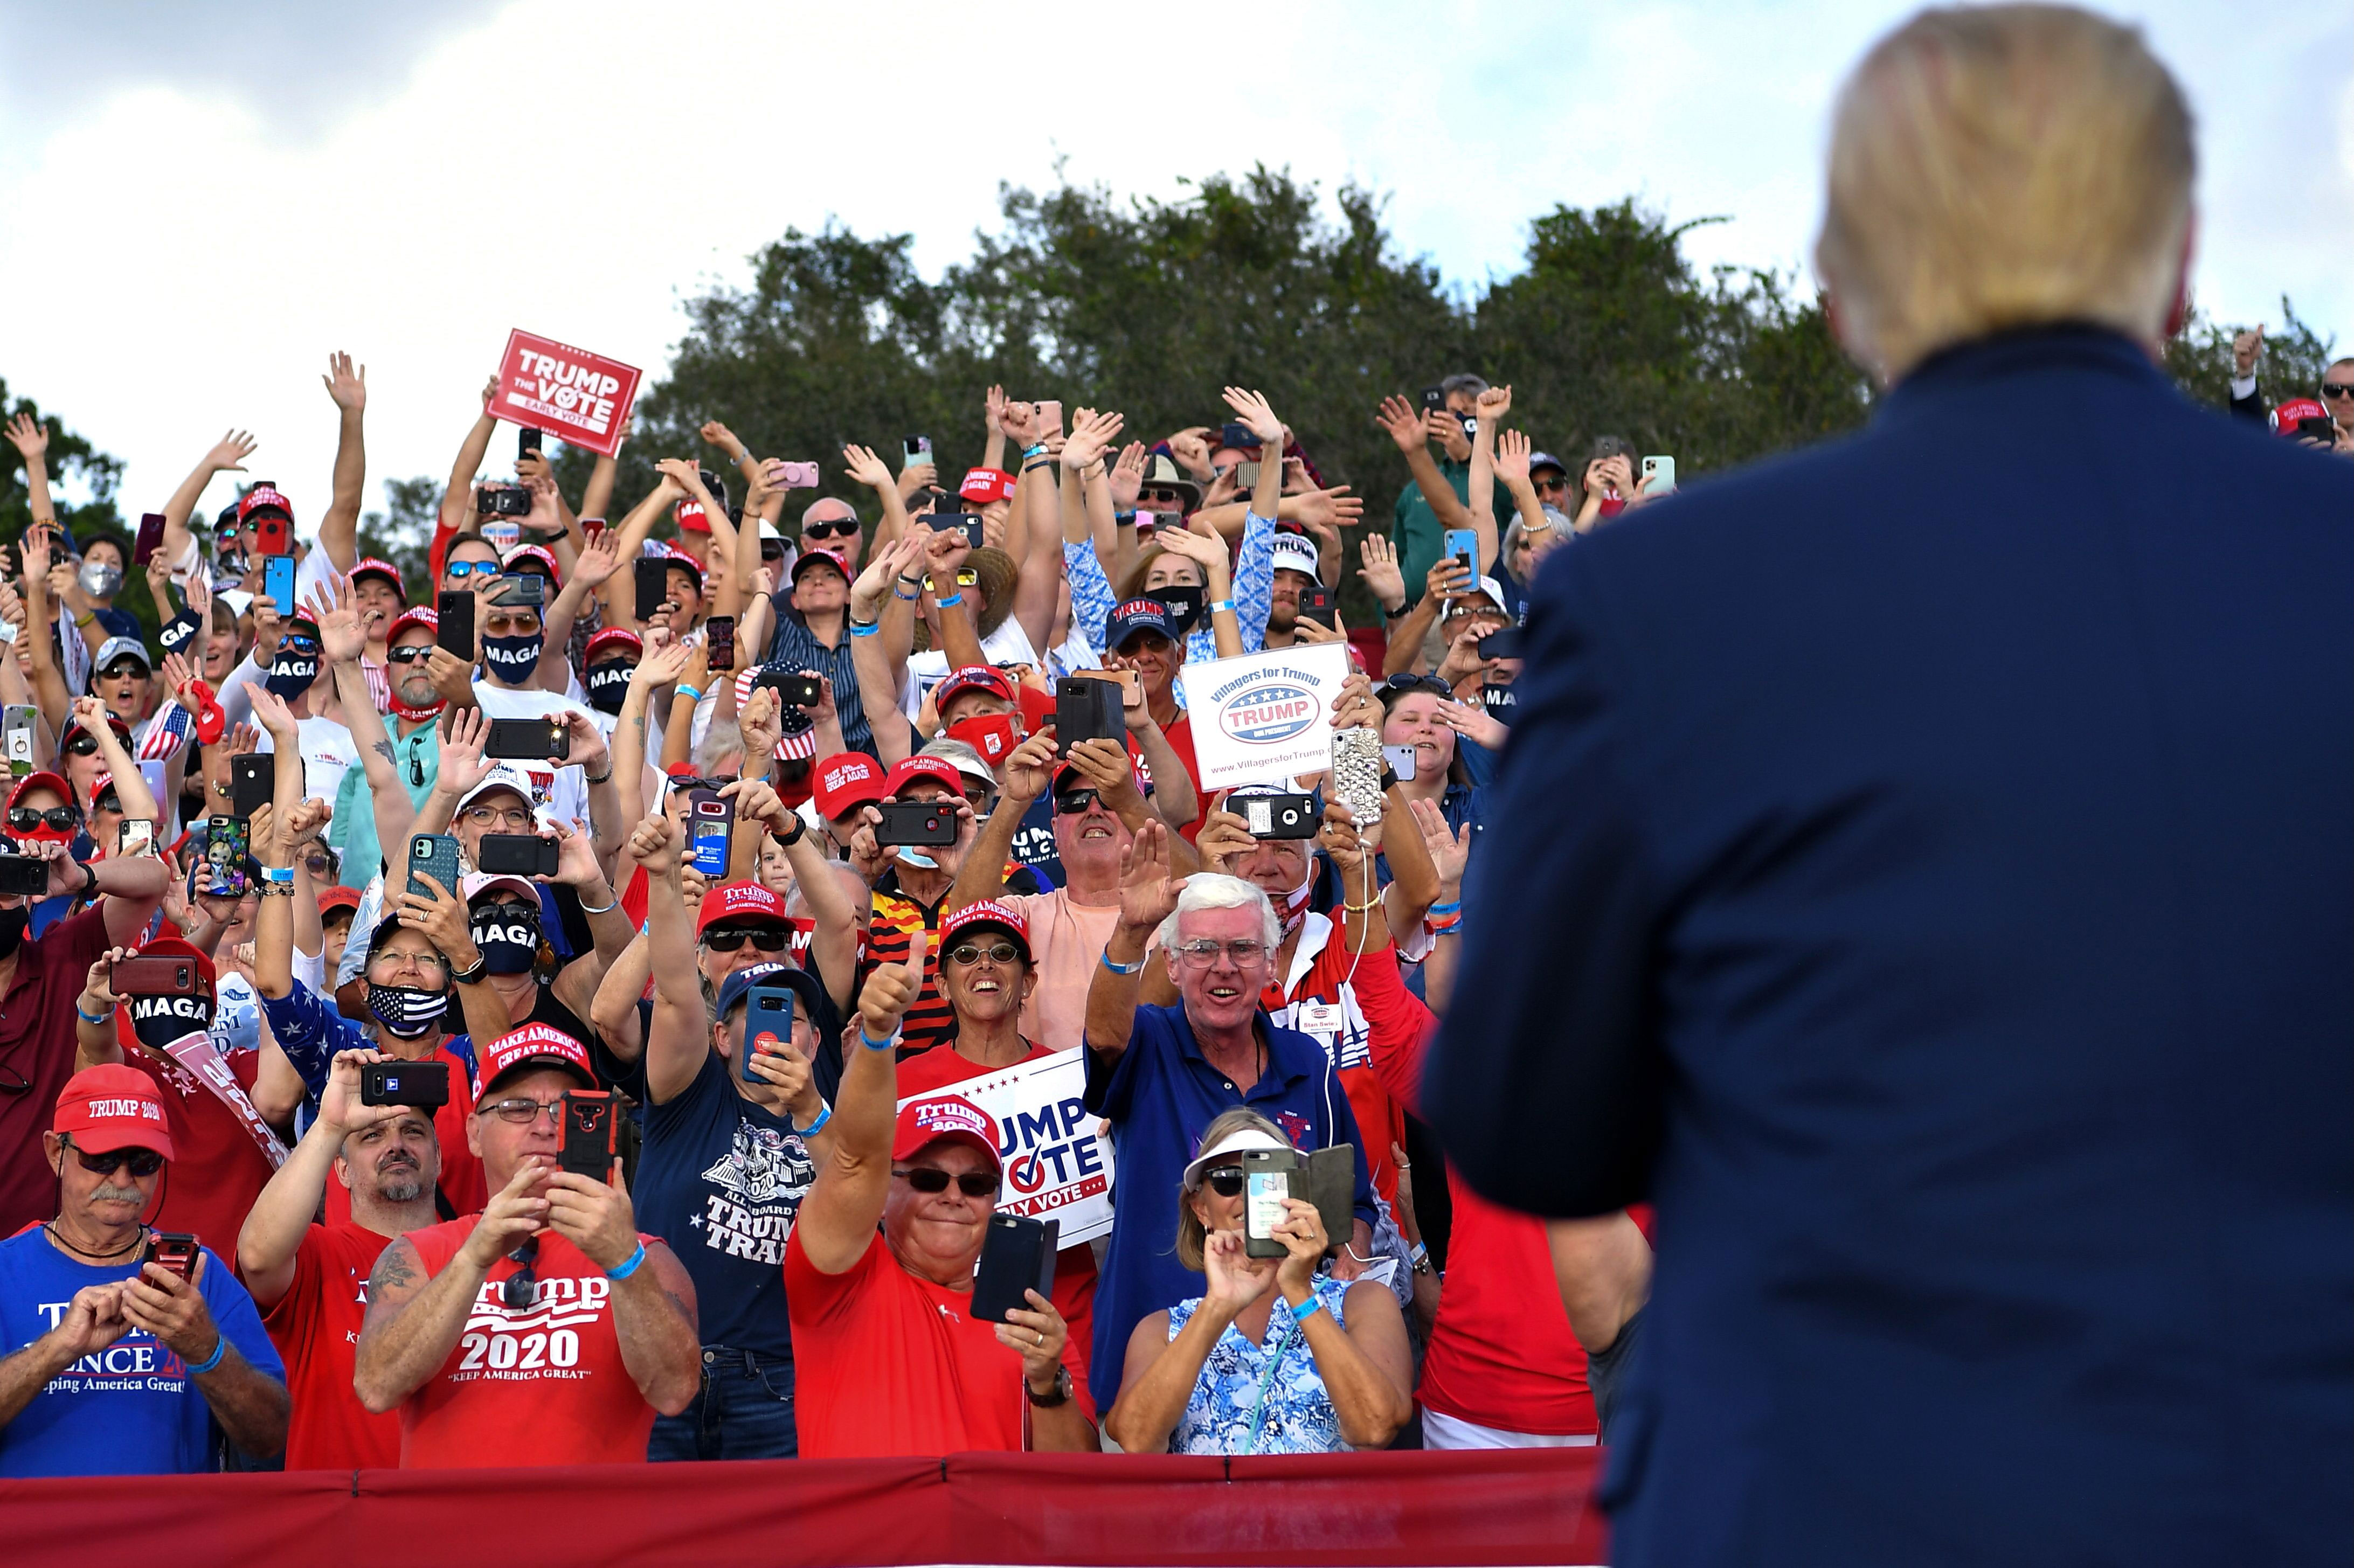 Supporters cheer as President Donald Trump arrives for a campaign rally in The Villages, Florida, on October 23.